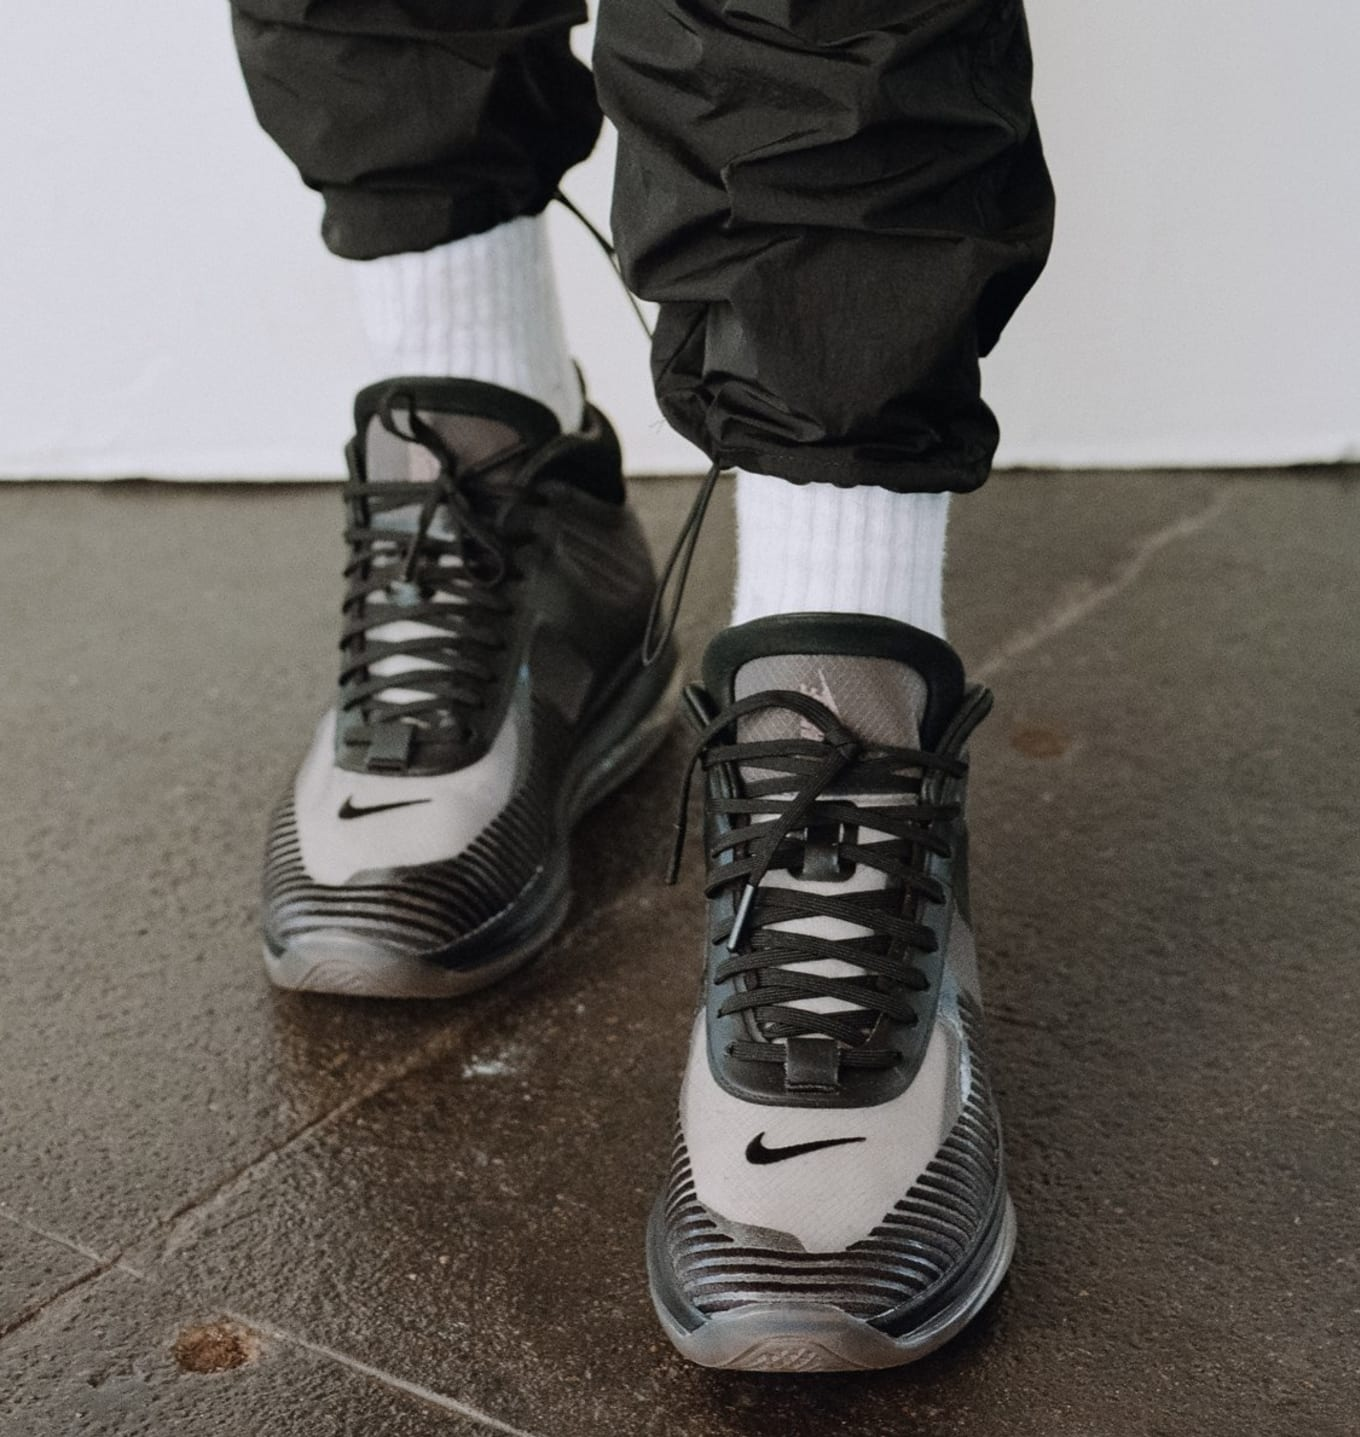 5b3015c9e John Elliott x Nike LeBron Icon QS 'Black' Release Date | Sole Collector